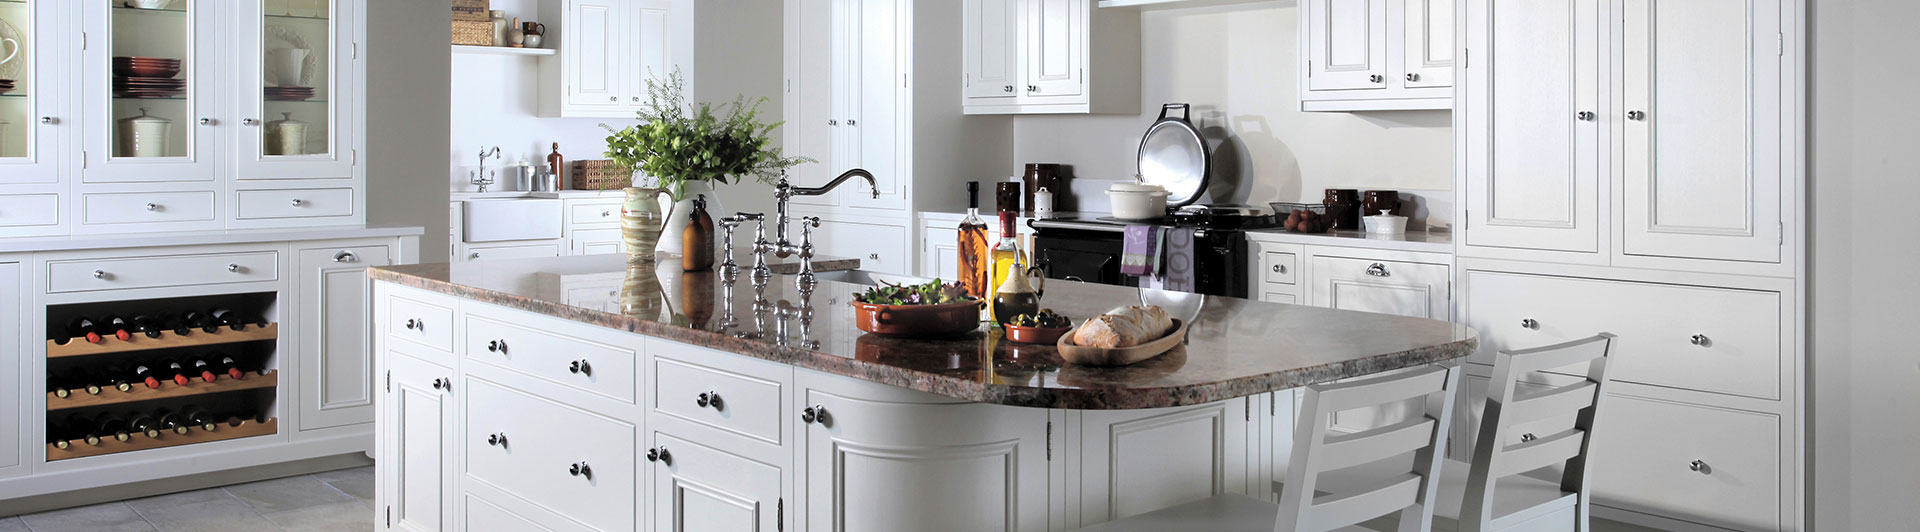 Salcombe Kitchens header